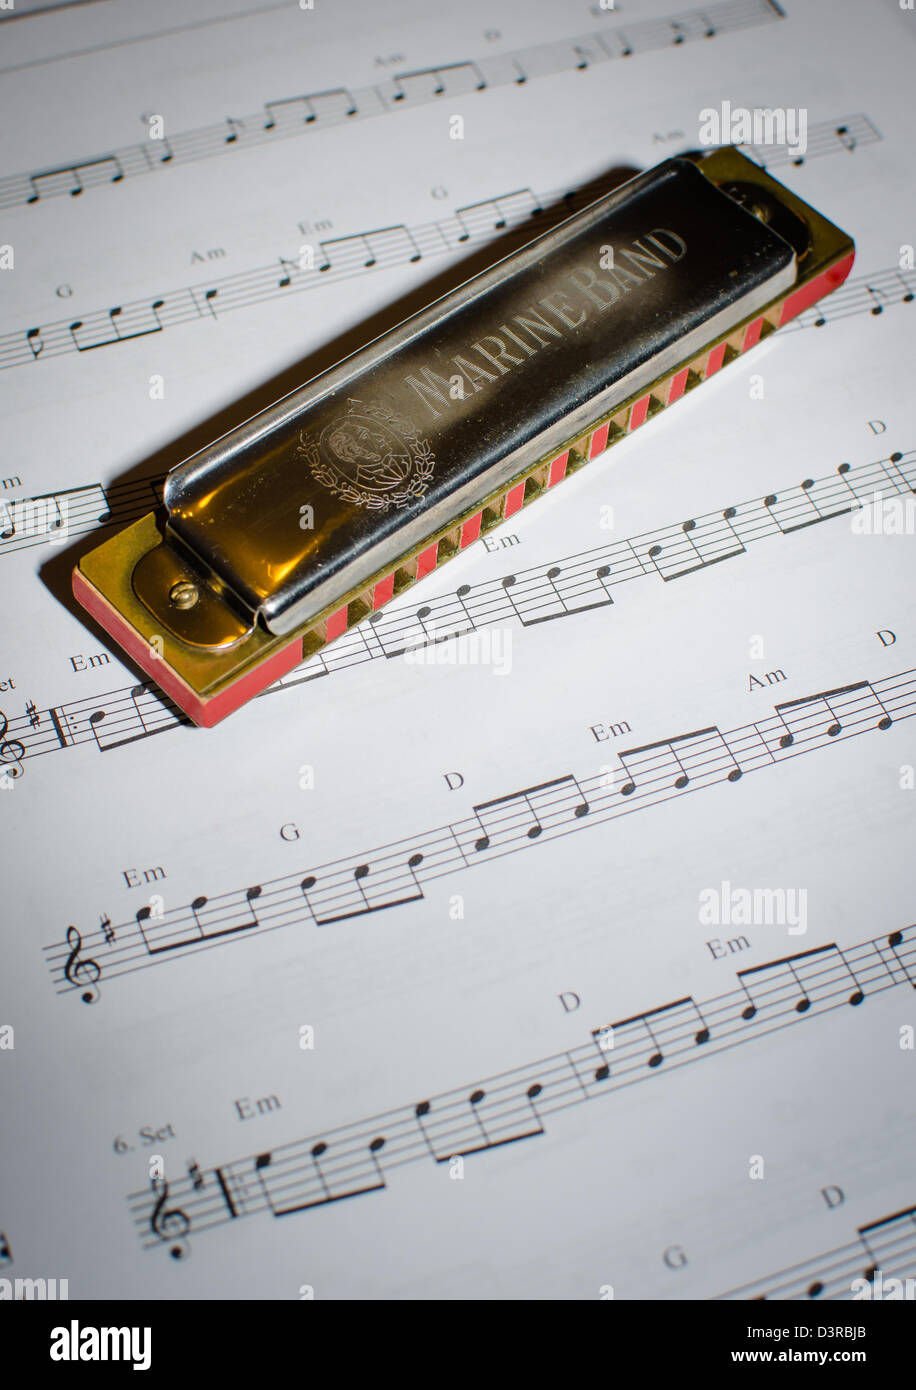 harmonica and note sheet - Stock Image